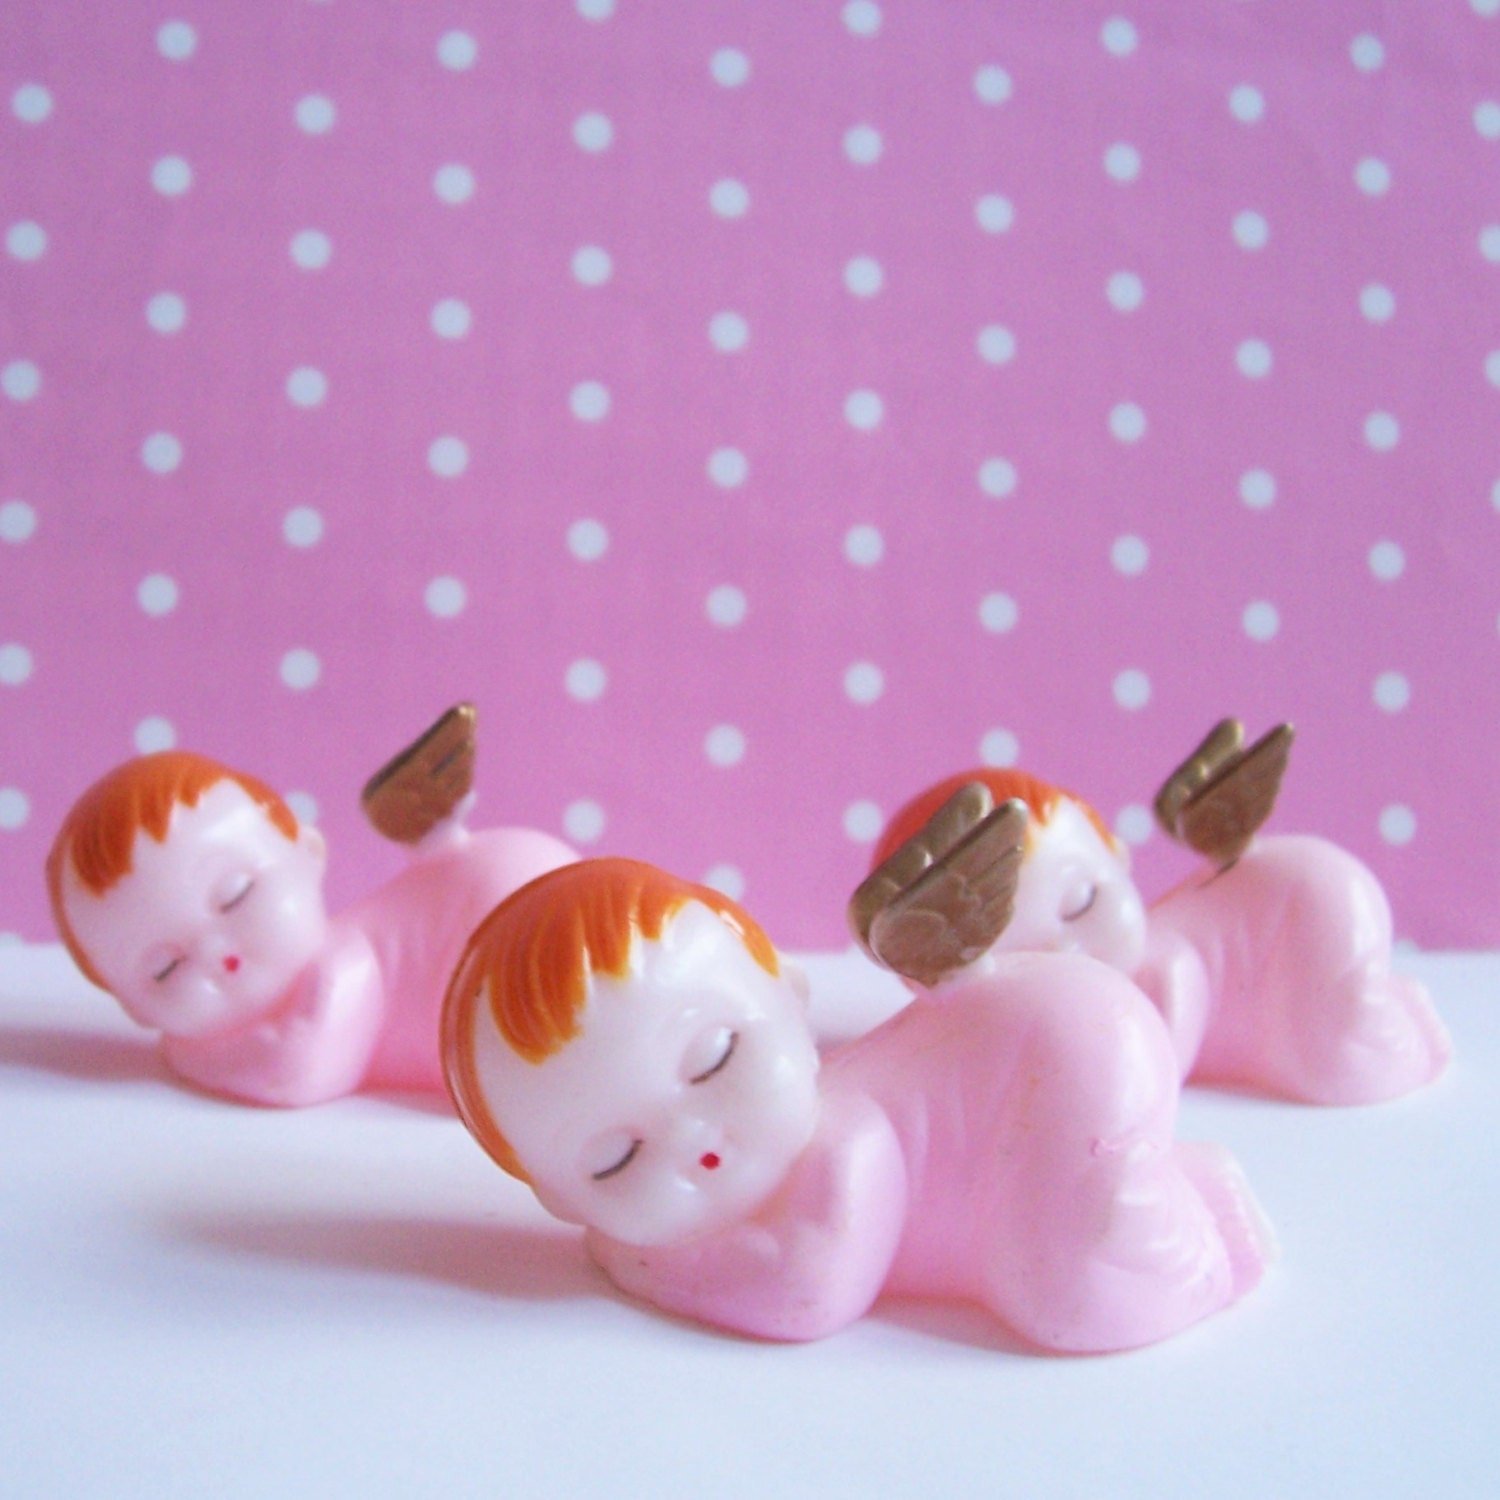 Three Baby Girl Cake Toppers Sleeping Angels